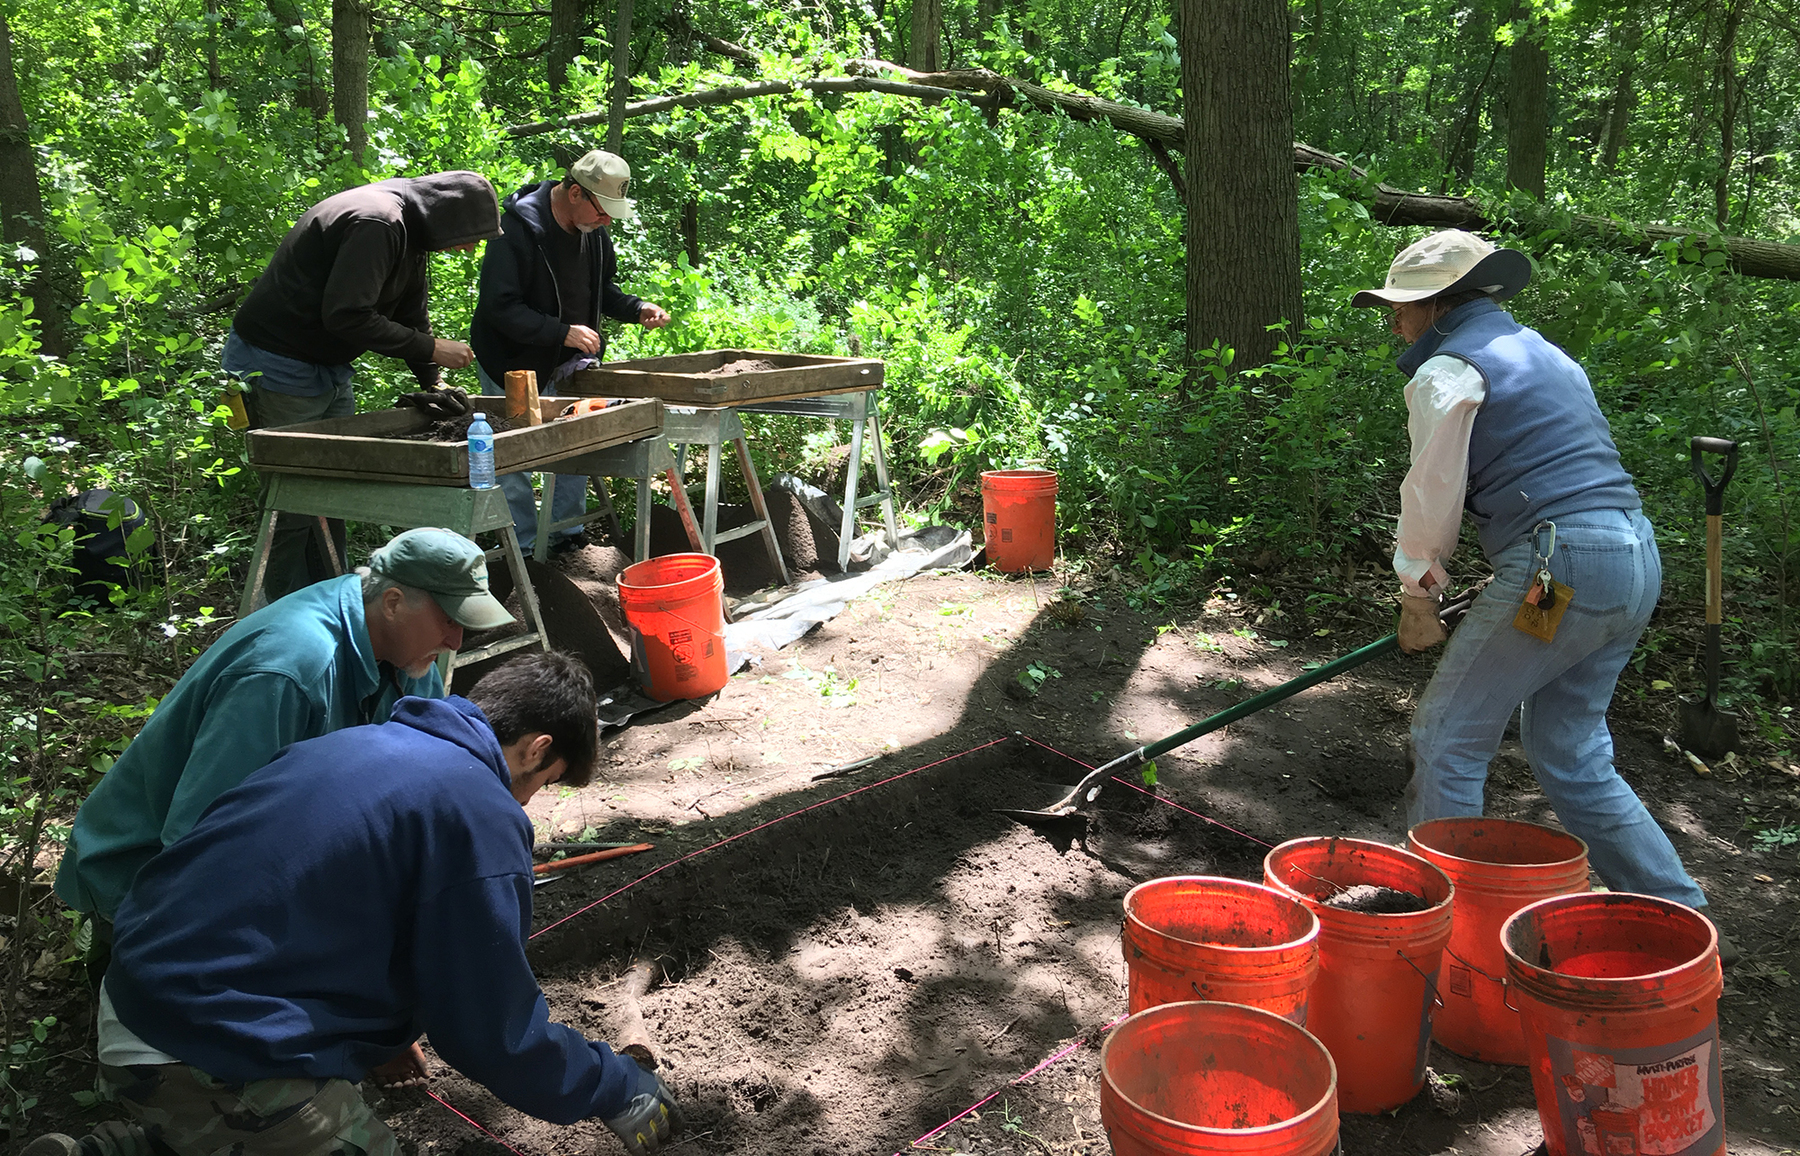 ISAS staff and volunteers work at a site in the Forest Preserves of Cook County